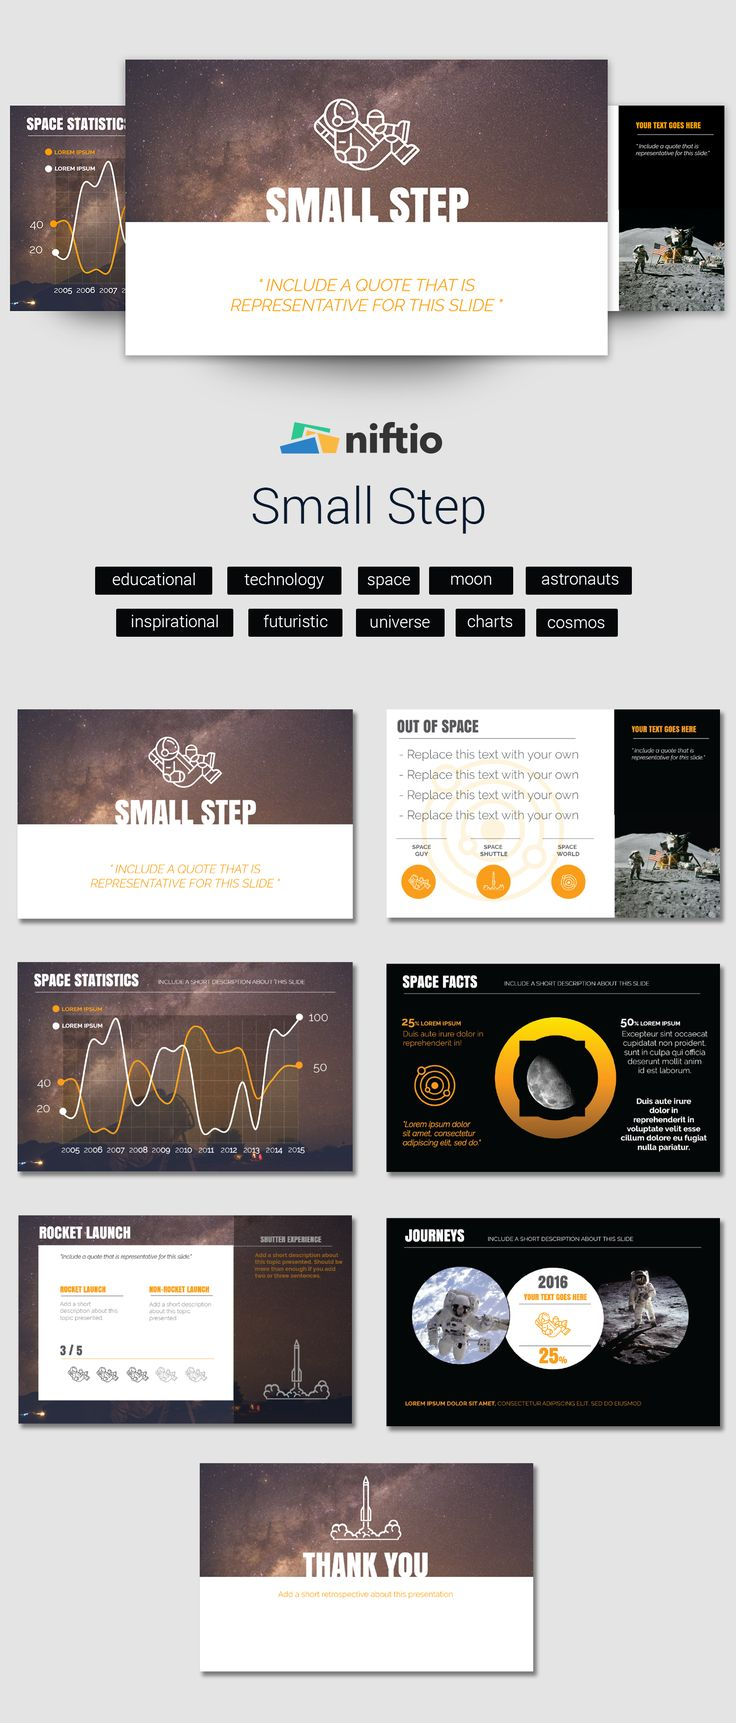 """""""That's one small step for a man, one giant leap for mankind.""""  #templatethursday #presentation#design #astronauts #charts #statistics #education #edutech #nasabeyond #astronomy #galaxy #andromeda #scienceread #cosmonaut #internationalspacestation #spacestation #station #outerspace #mars"""